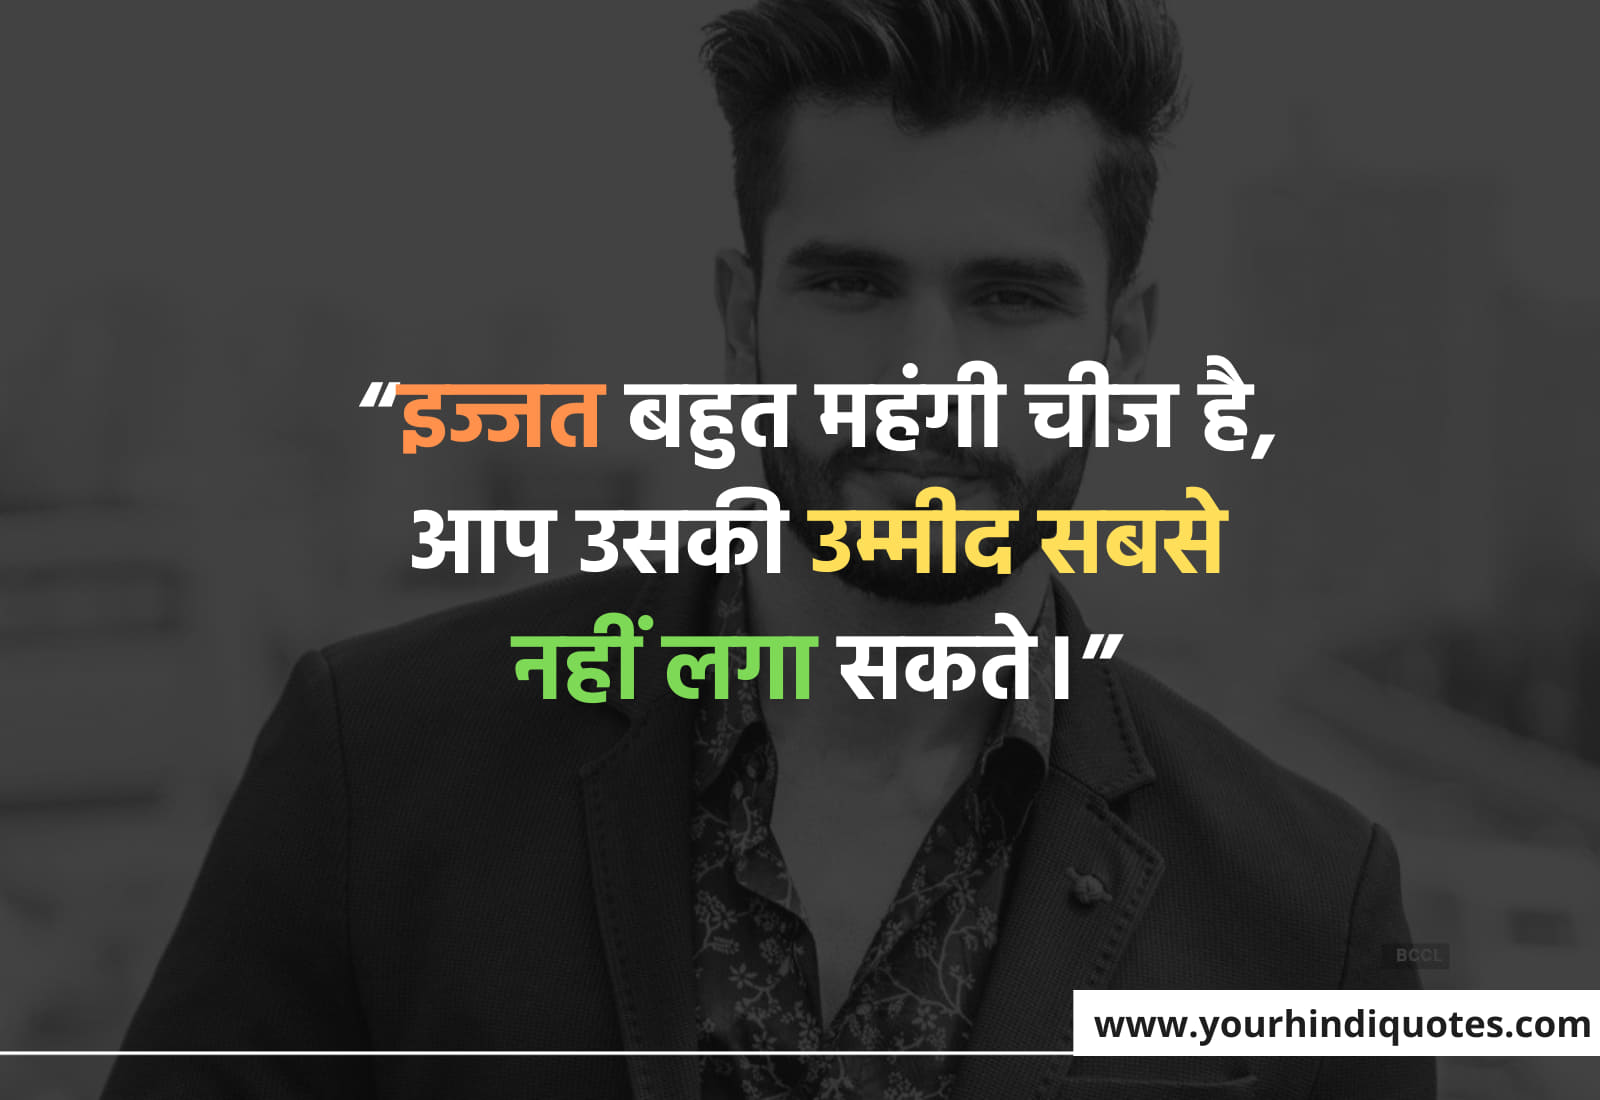 Emotional Quotes For Life